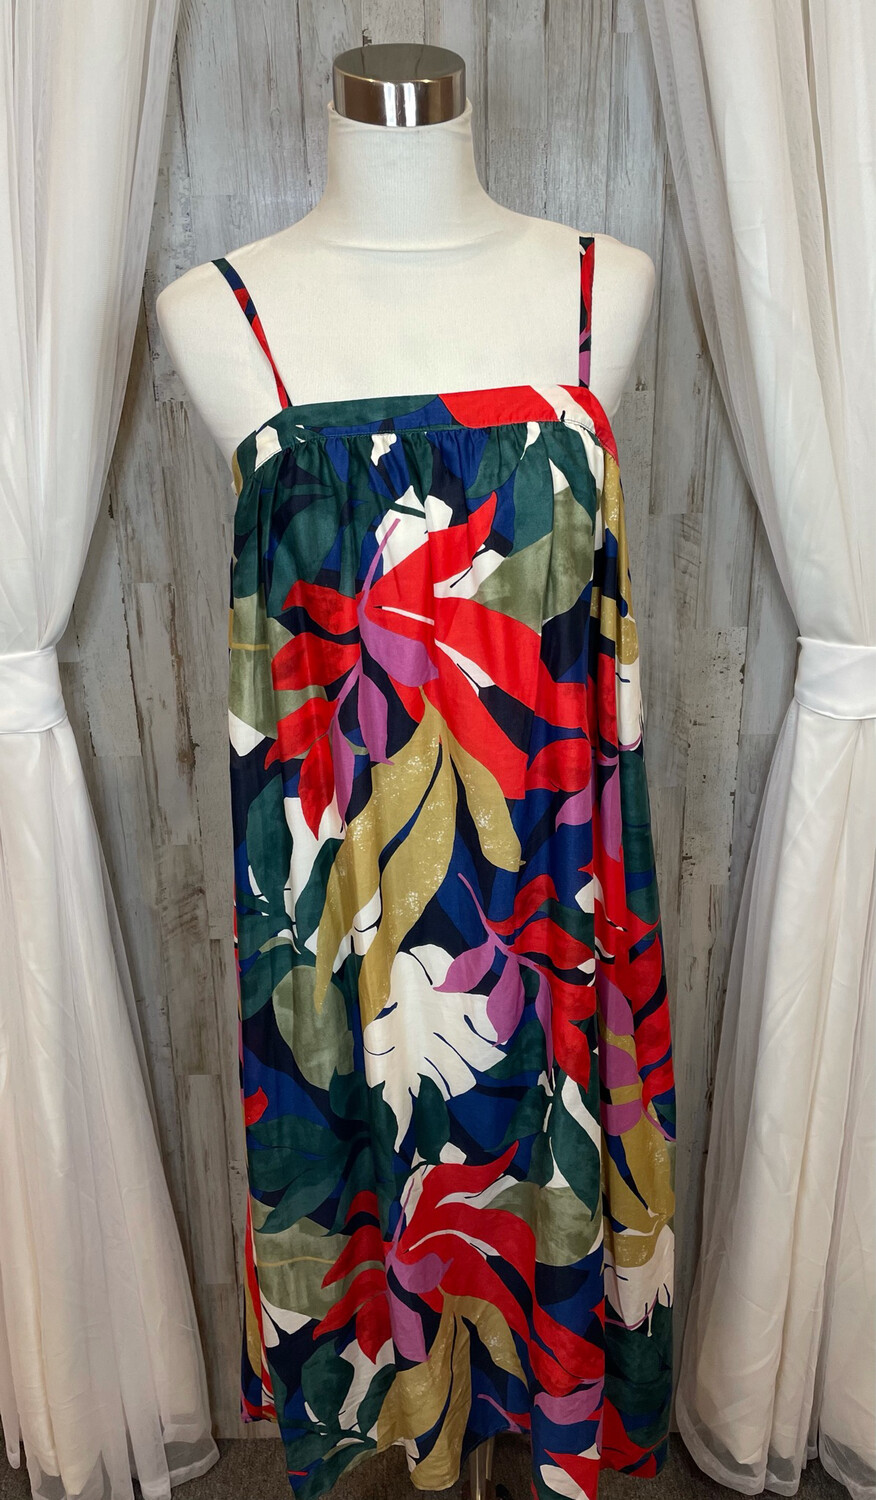 A New Day Multicolor Floral Print Maxi Dress - XS